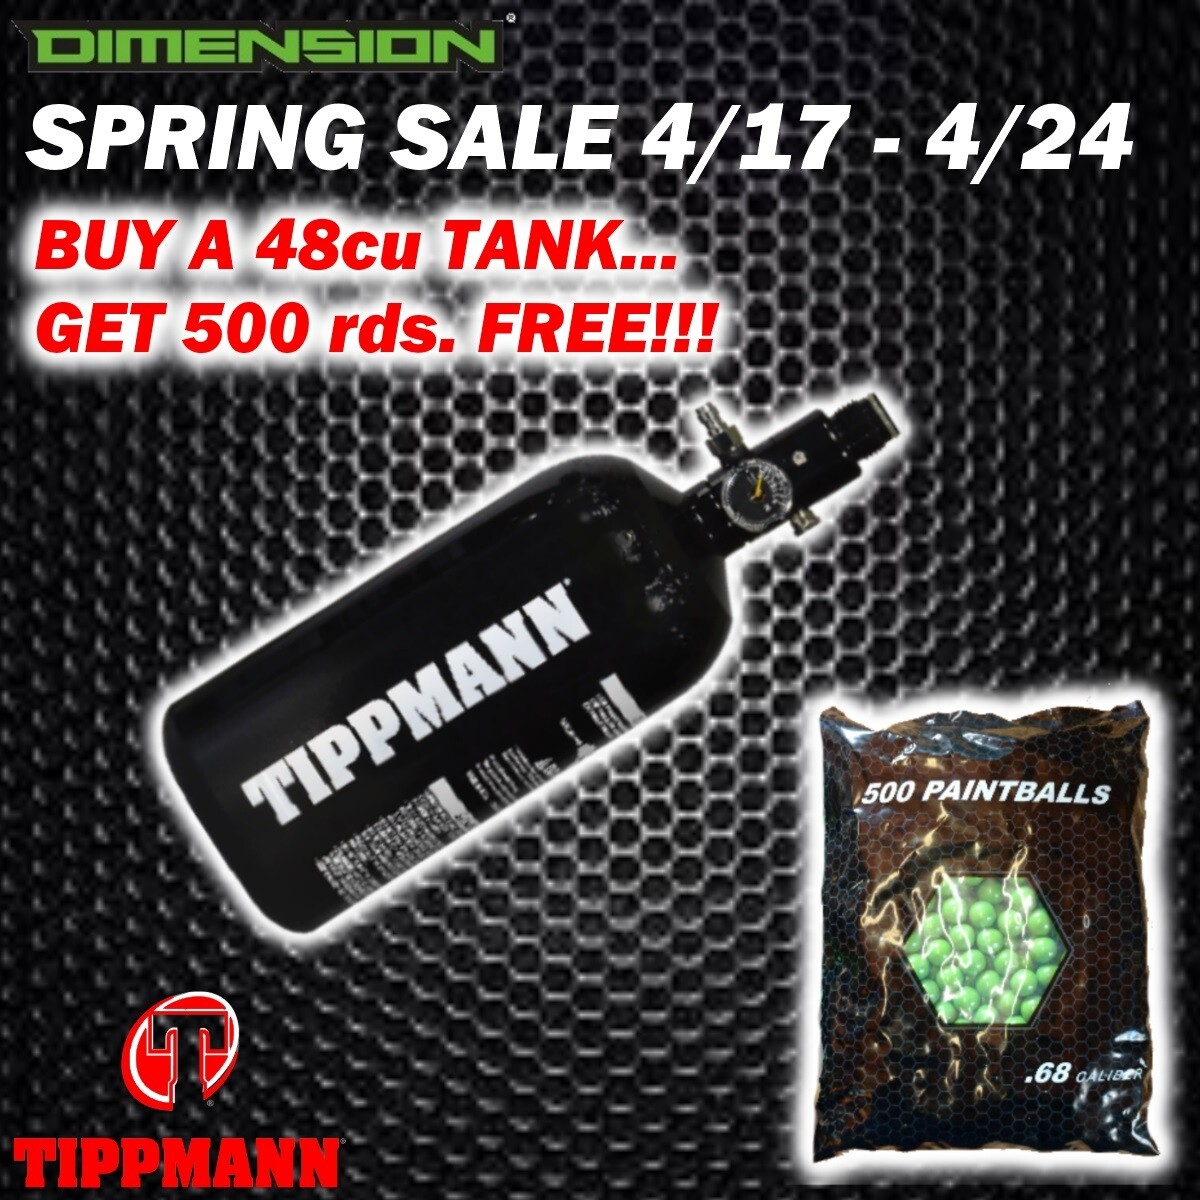 SPRING SALE 4-17/4-24 - Tippmann Compressed Air Tank - 48 cu 3000 psi Aluminum *** FREE 500 Rds Paint ***